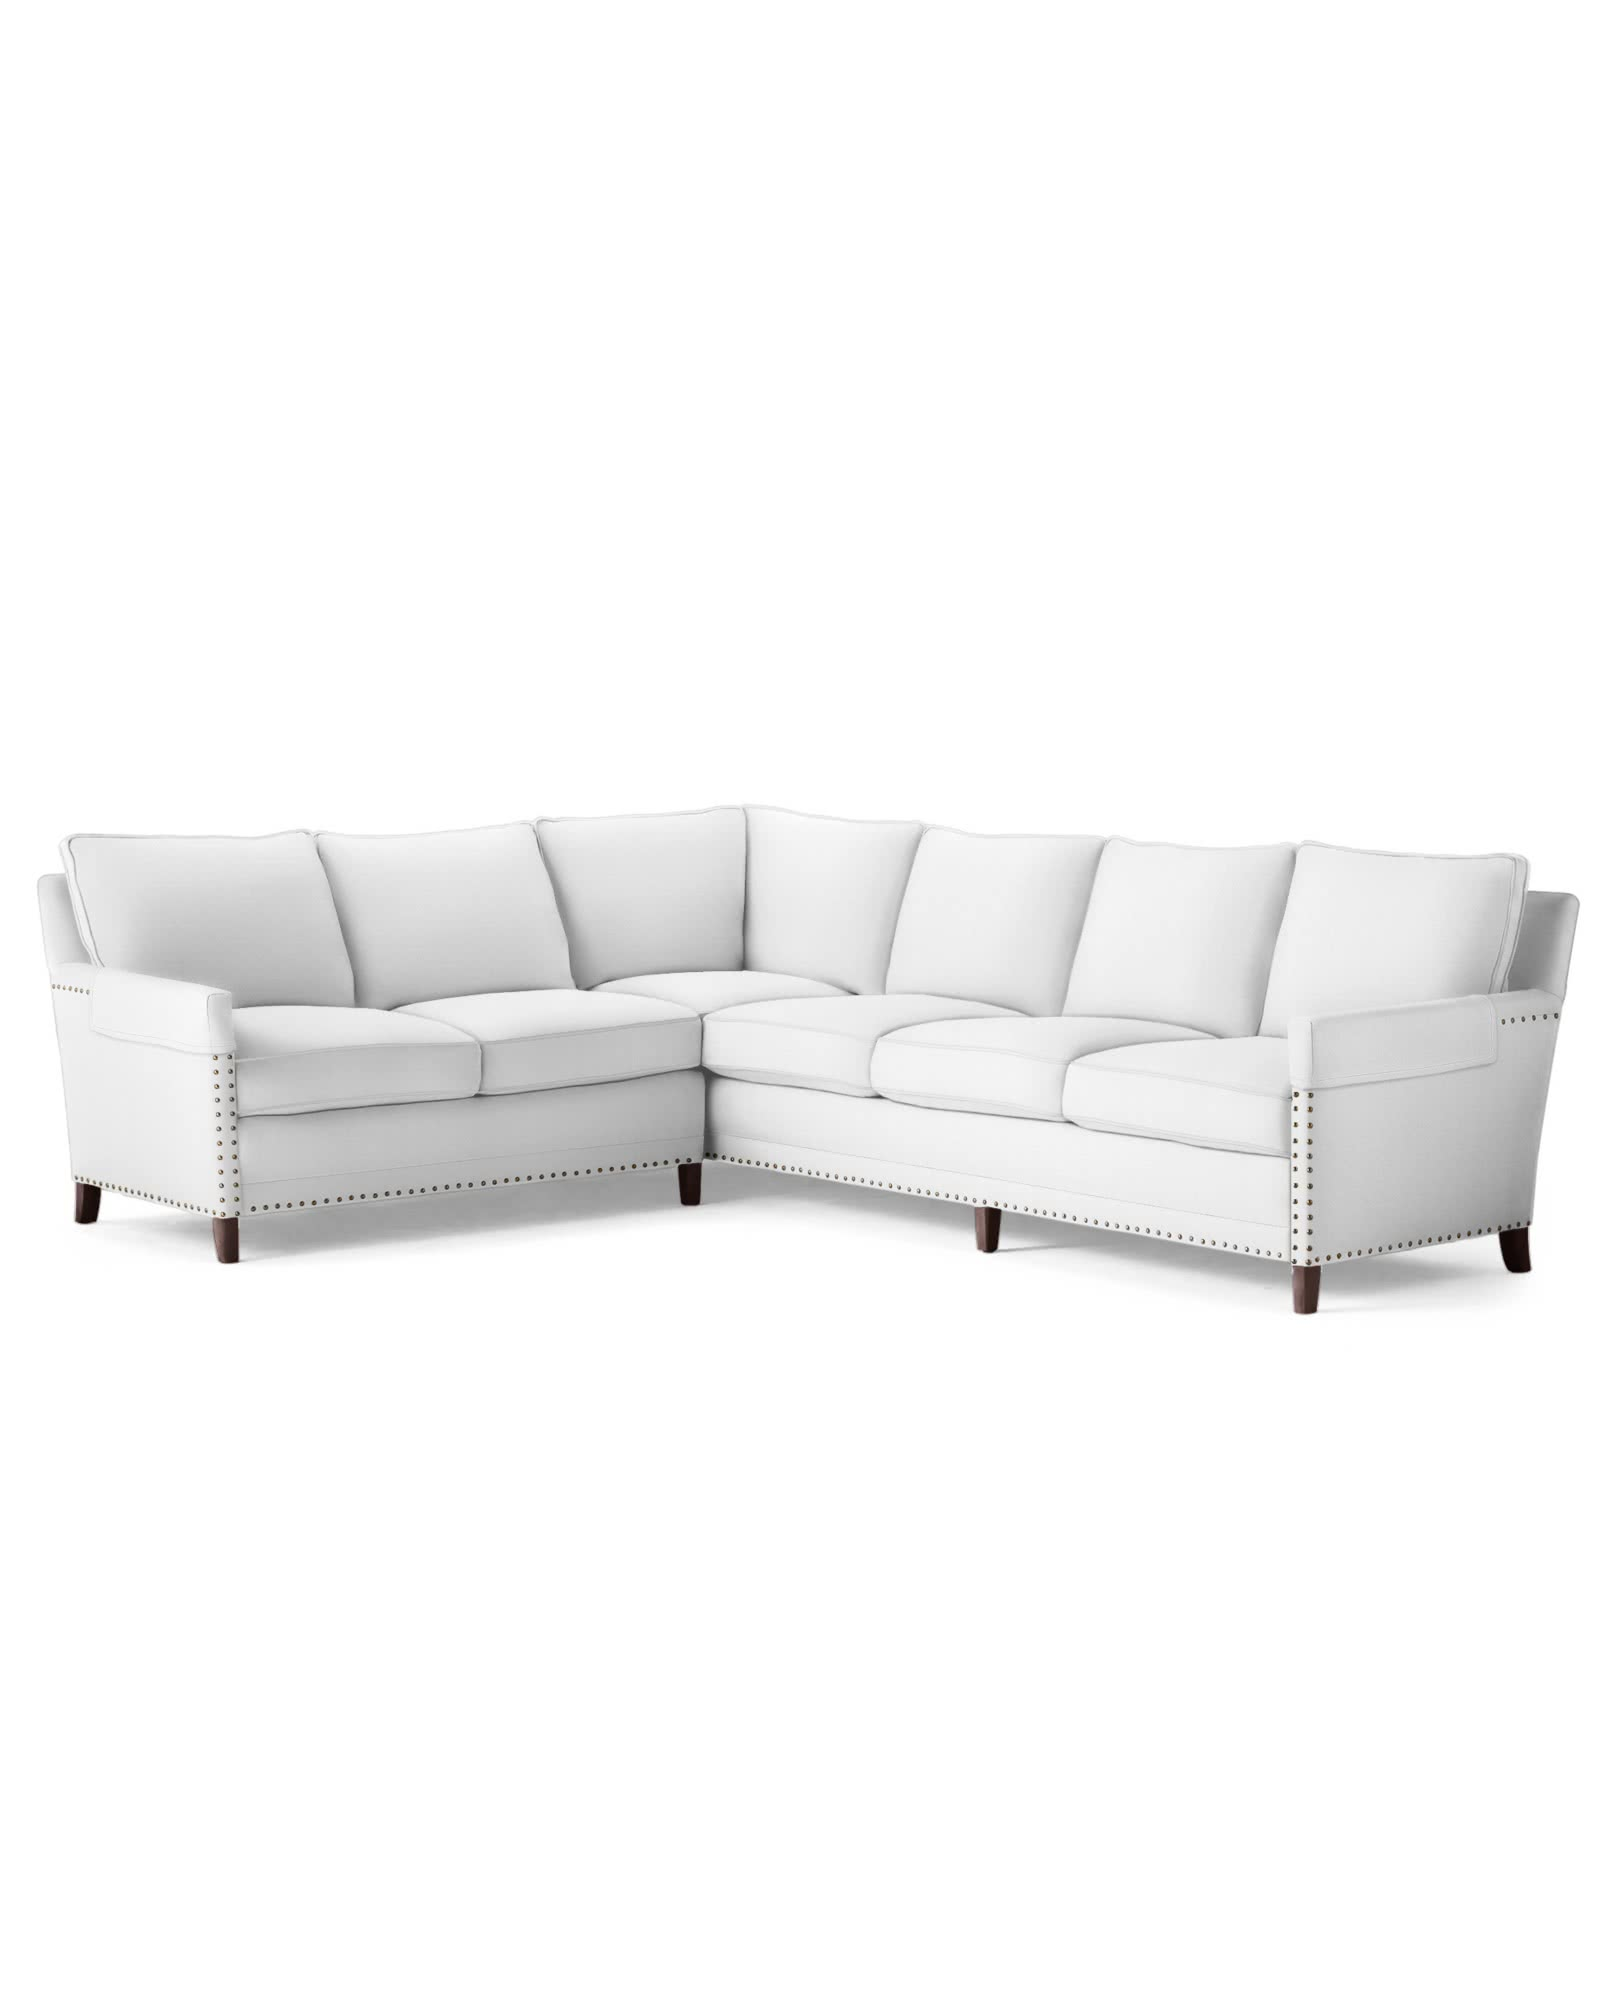 spruce street leftfacing lsectional with nailheads. spruce street sectional sofa (left facing)  sofas  serena and lily